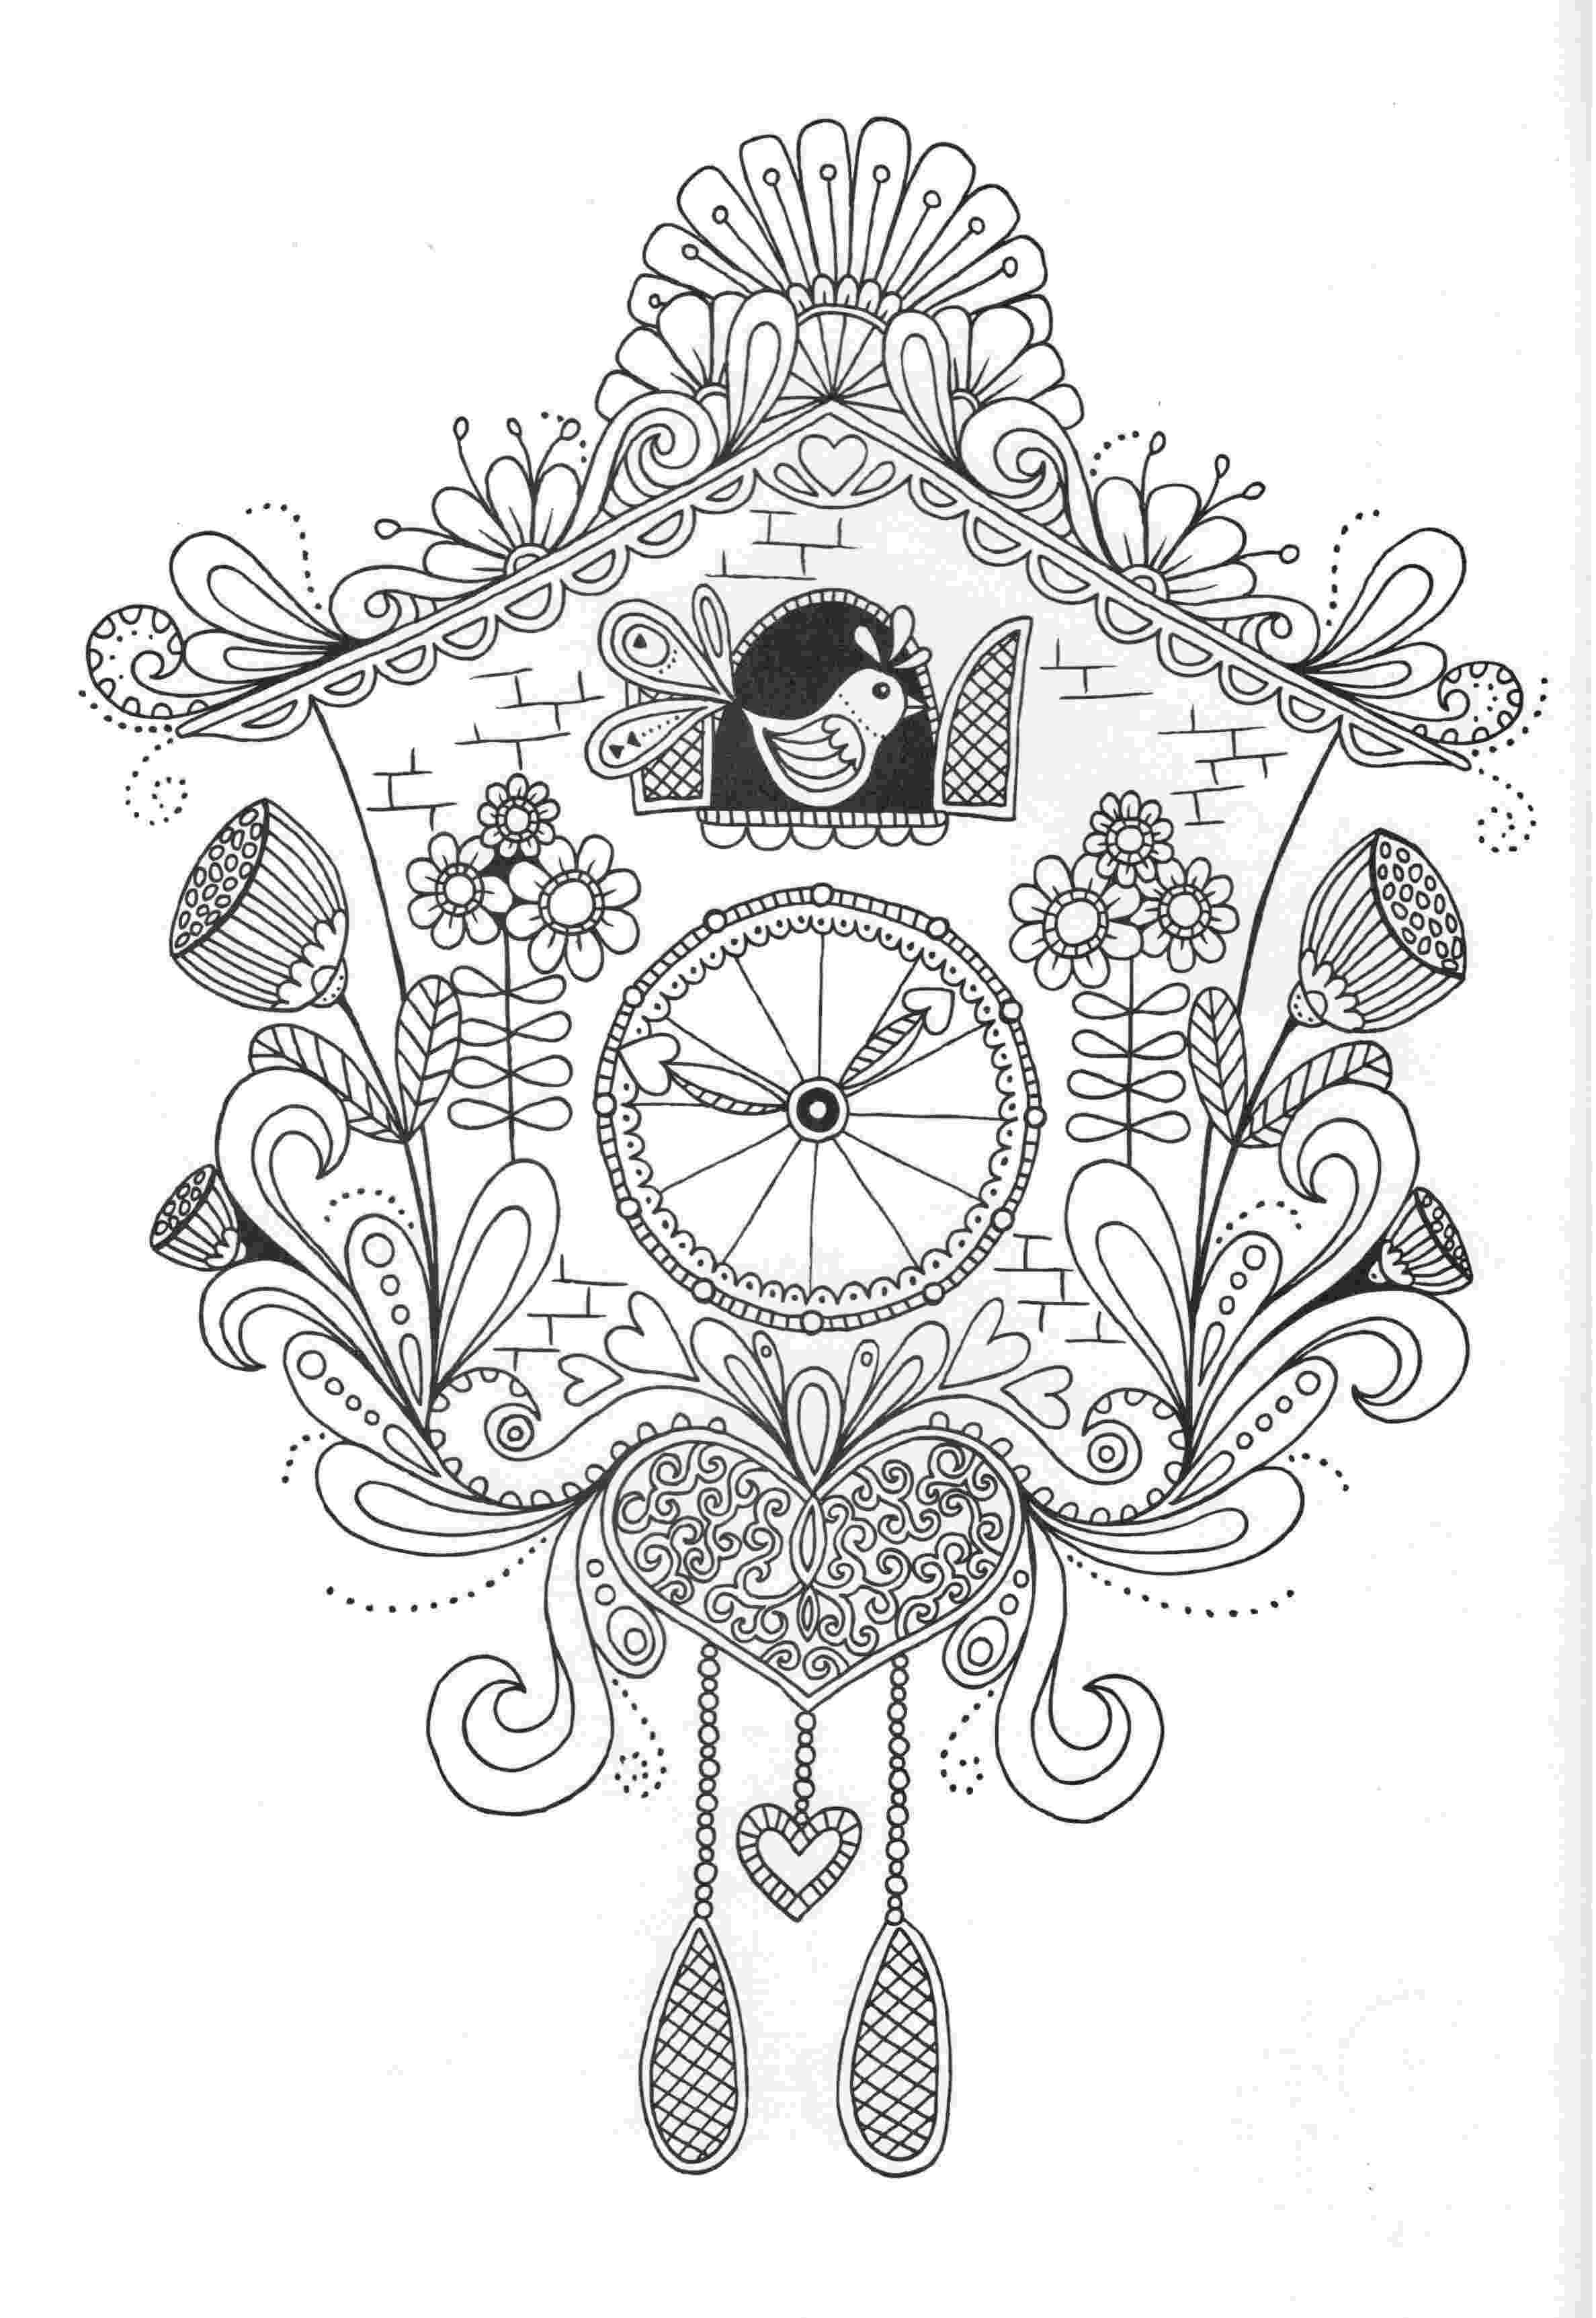 free coloring pages printable for adults pin by denise bynes on coloring sheets adult coloring for adults printable free pages coloring